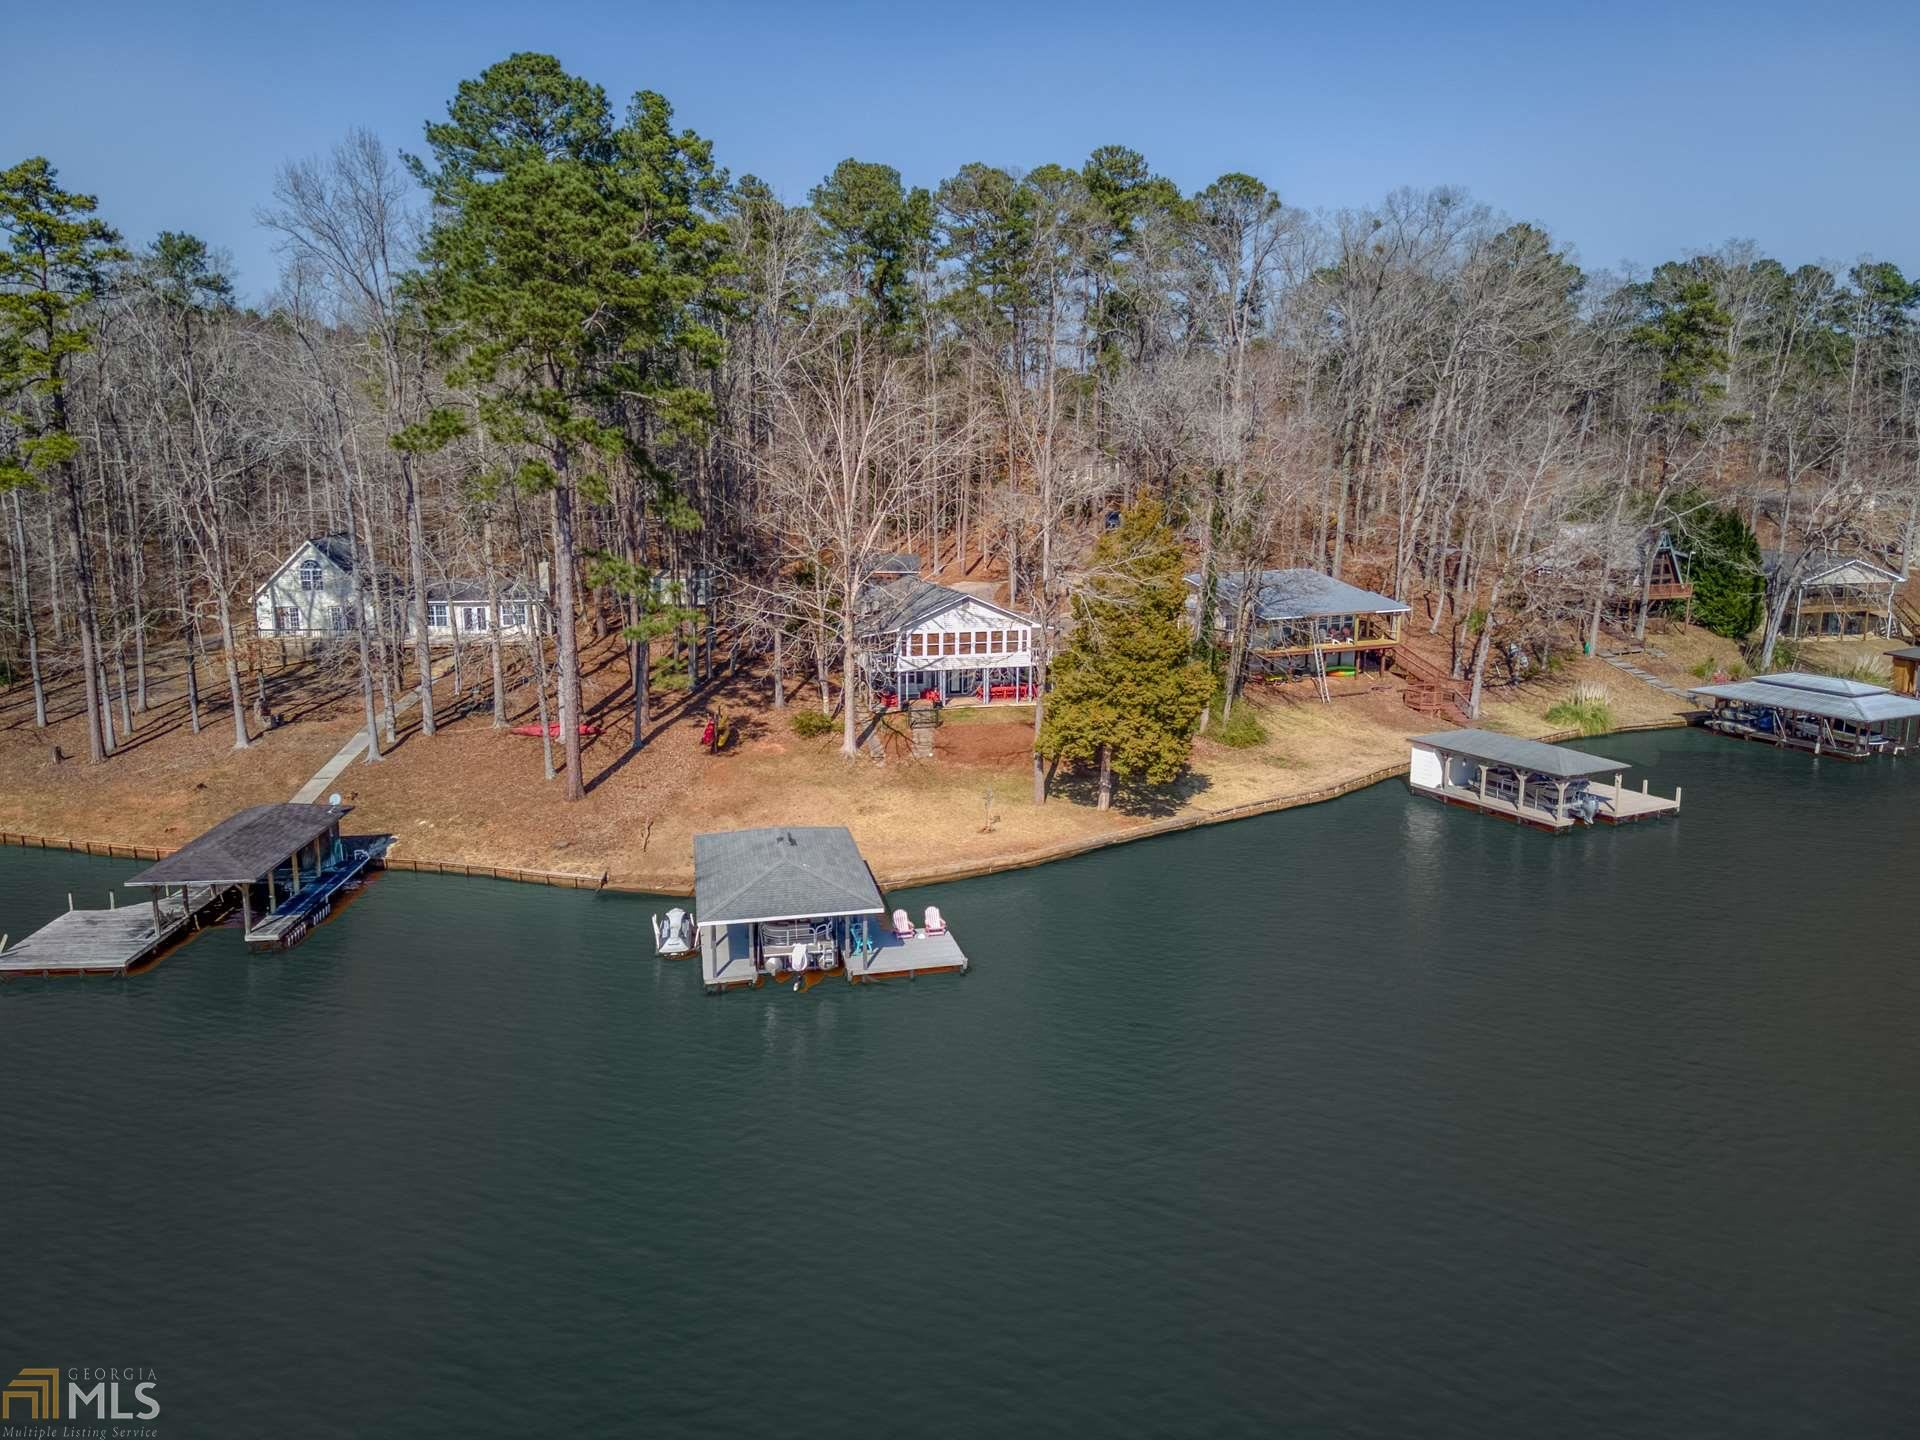 301 Thomas Dr, Eatonton, GA 31024 - MLS#: 8942971